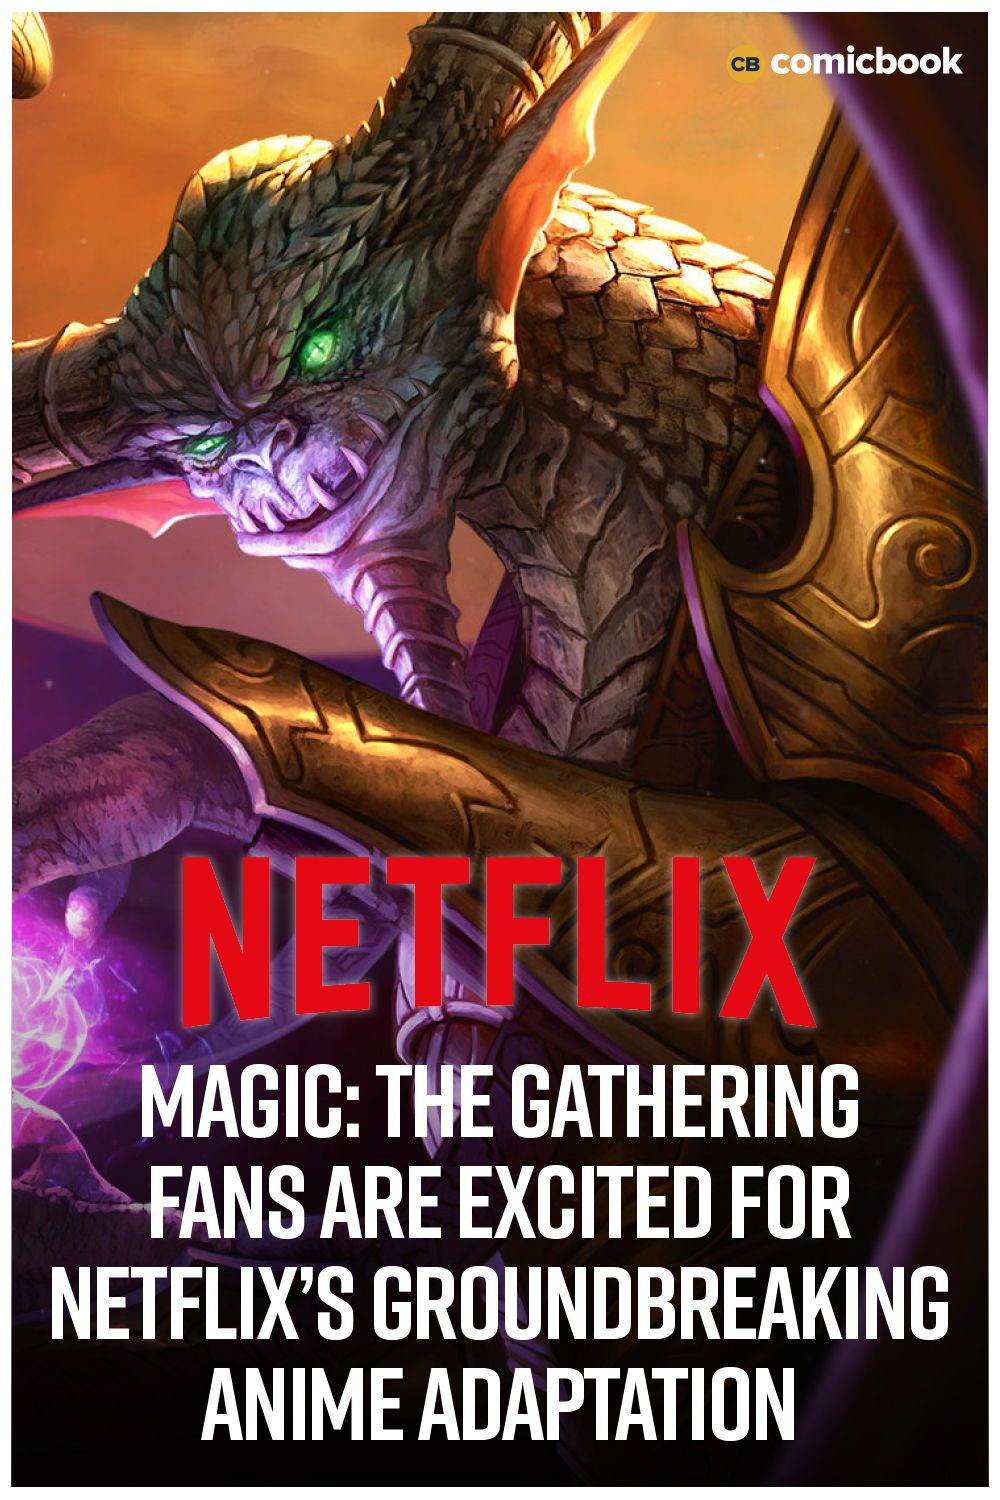 Magic The Gathering Fans Are Excited For Netflix's